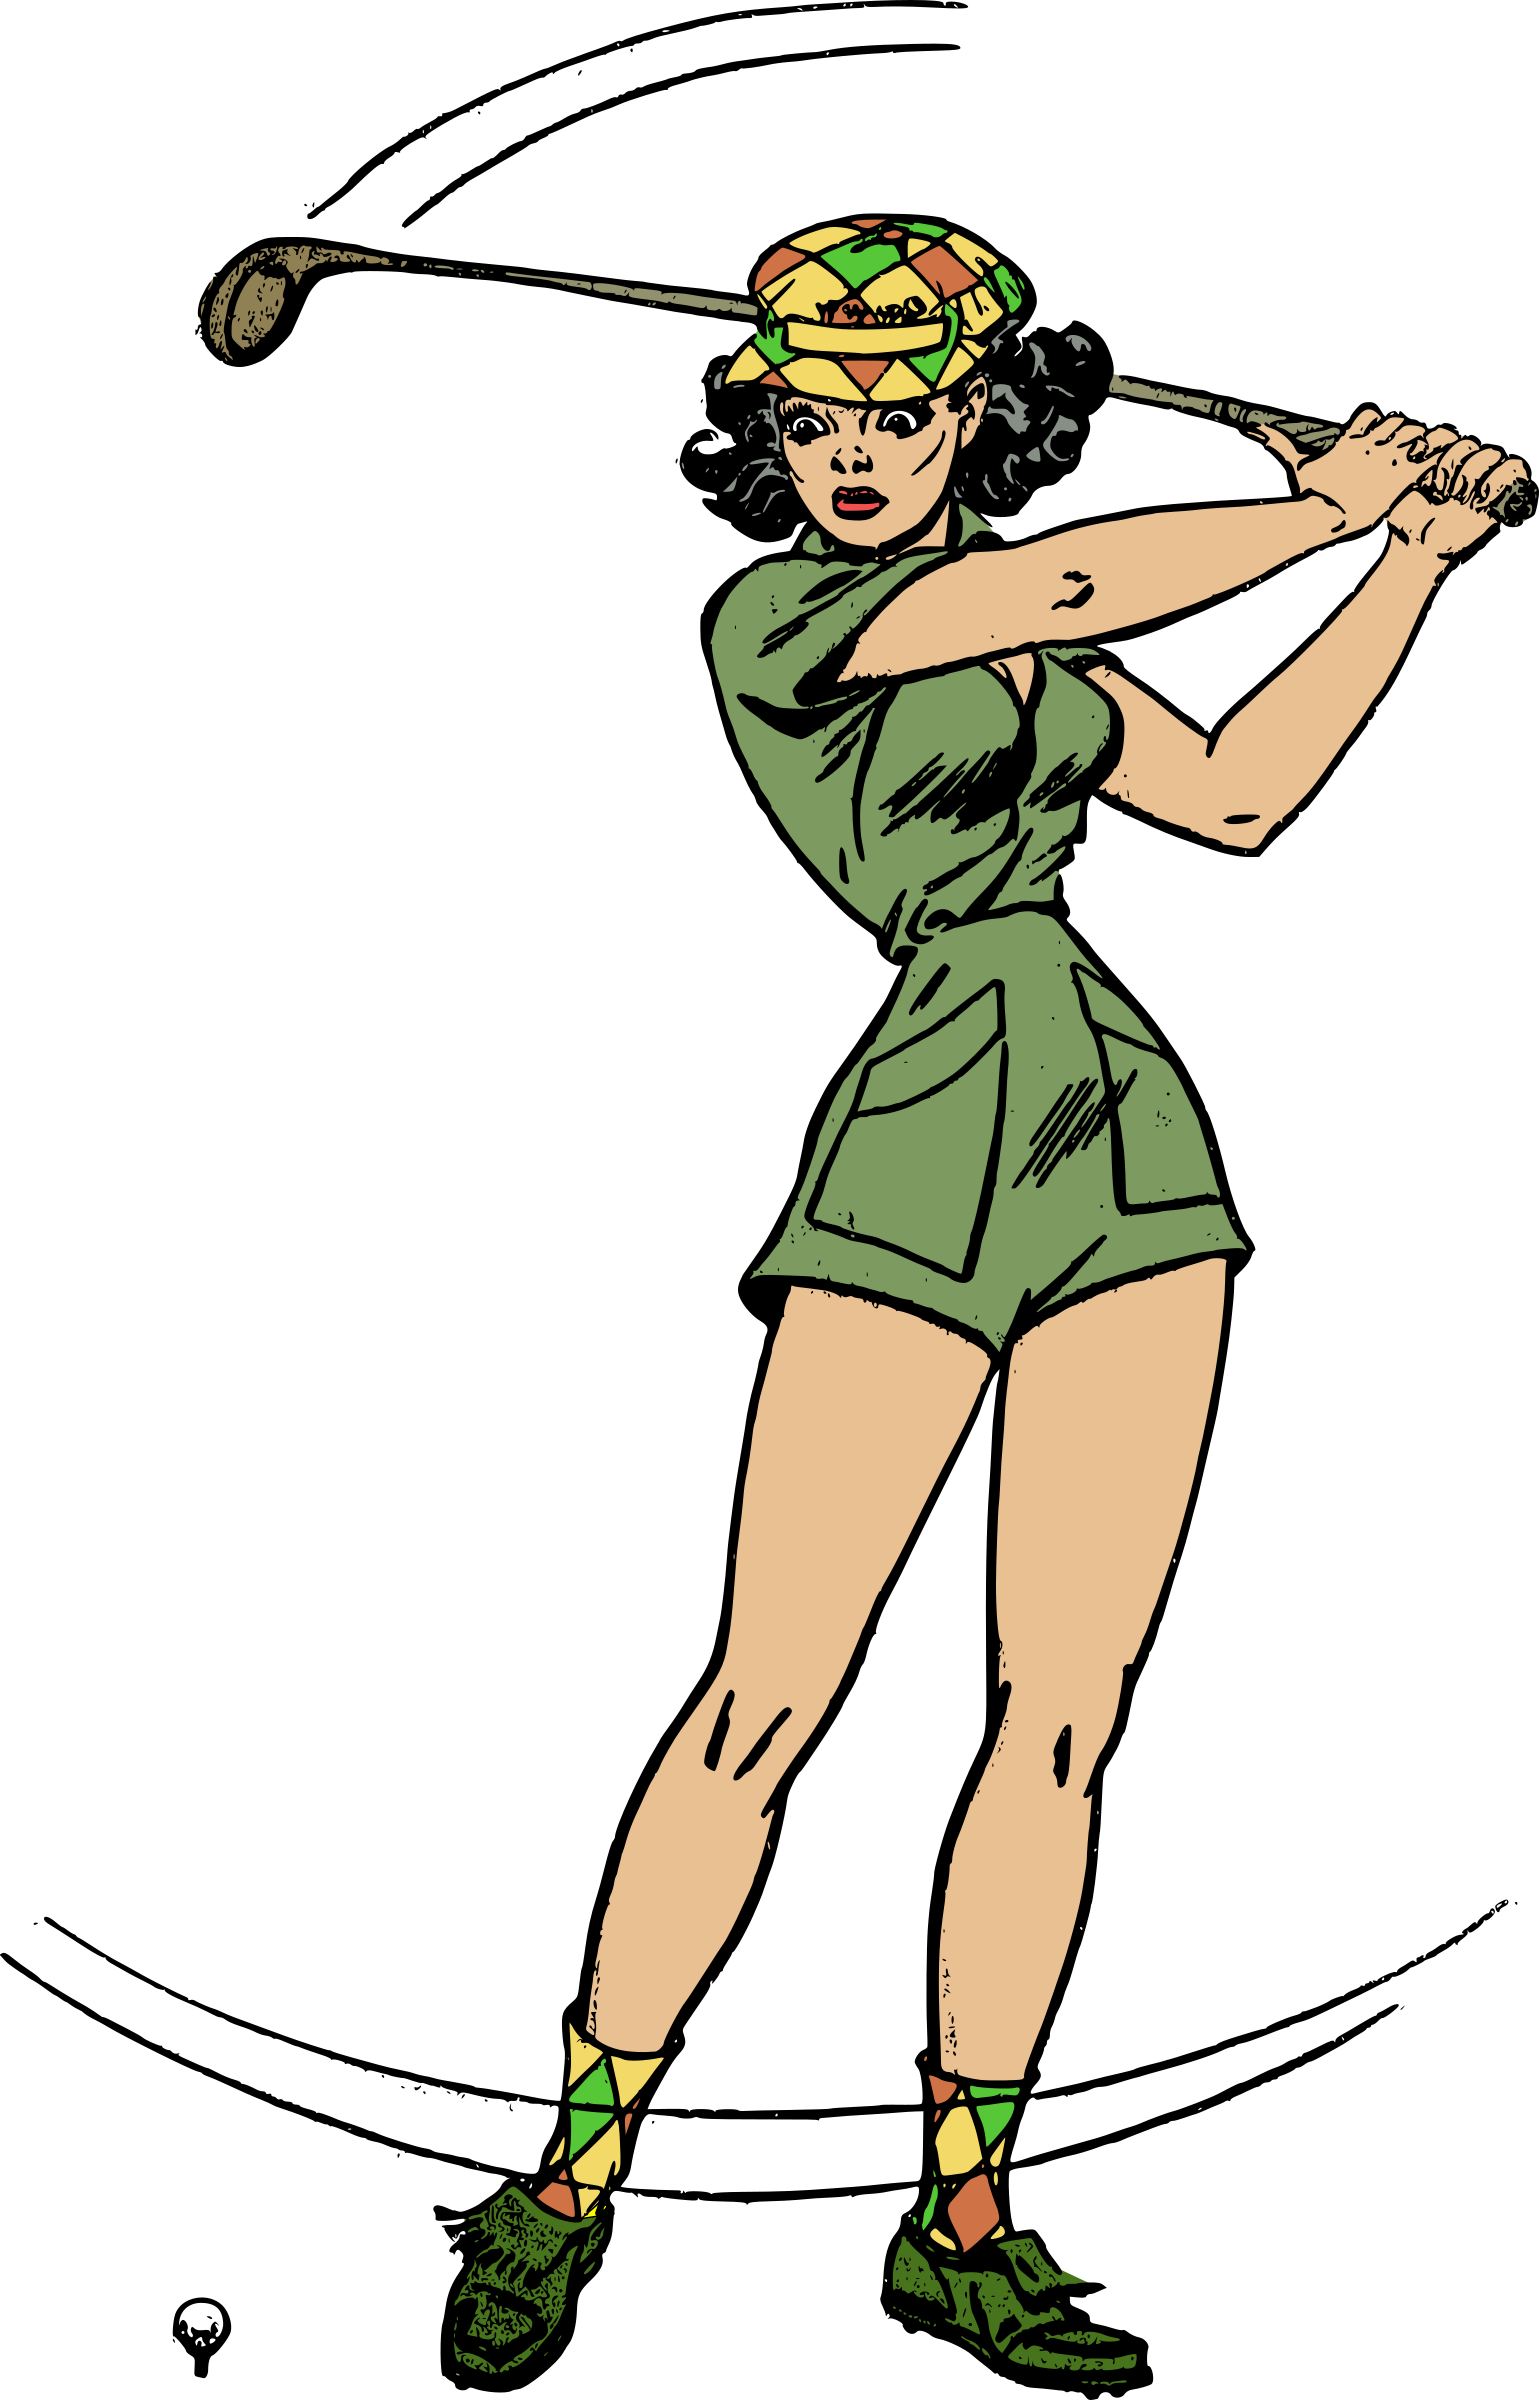 Female Golfer Transparent Background PNG Image